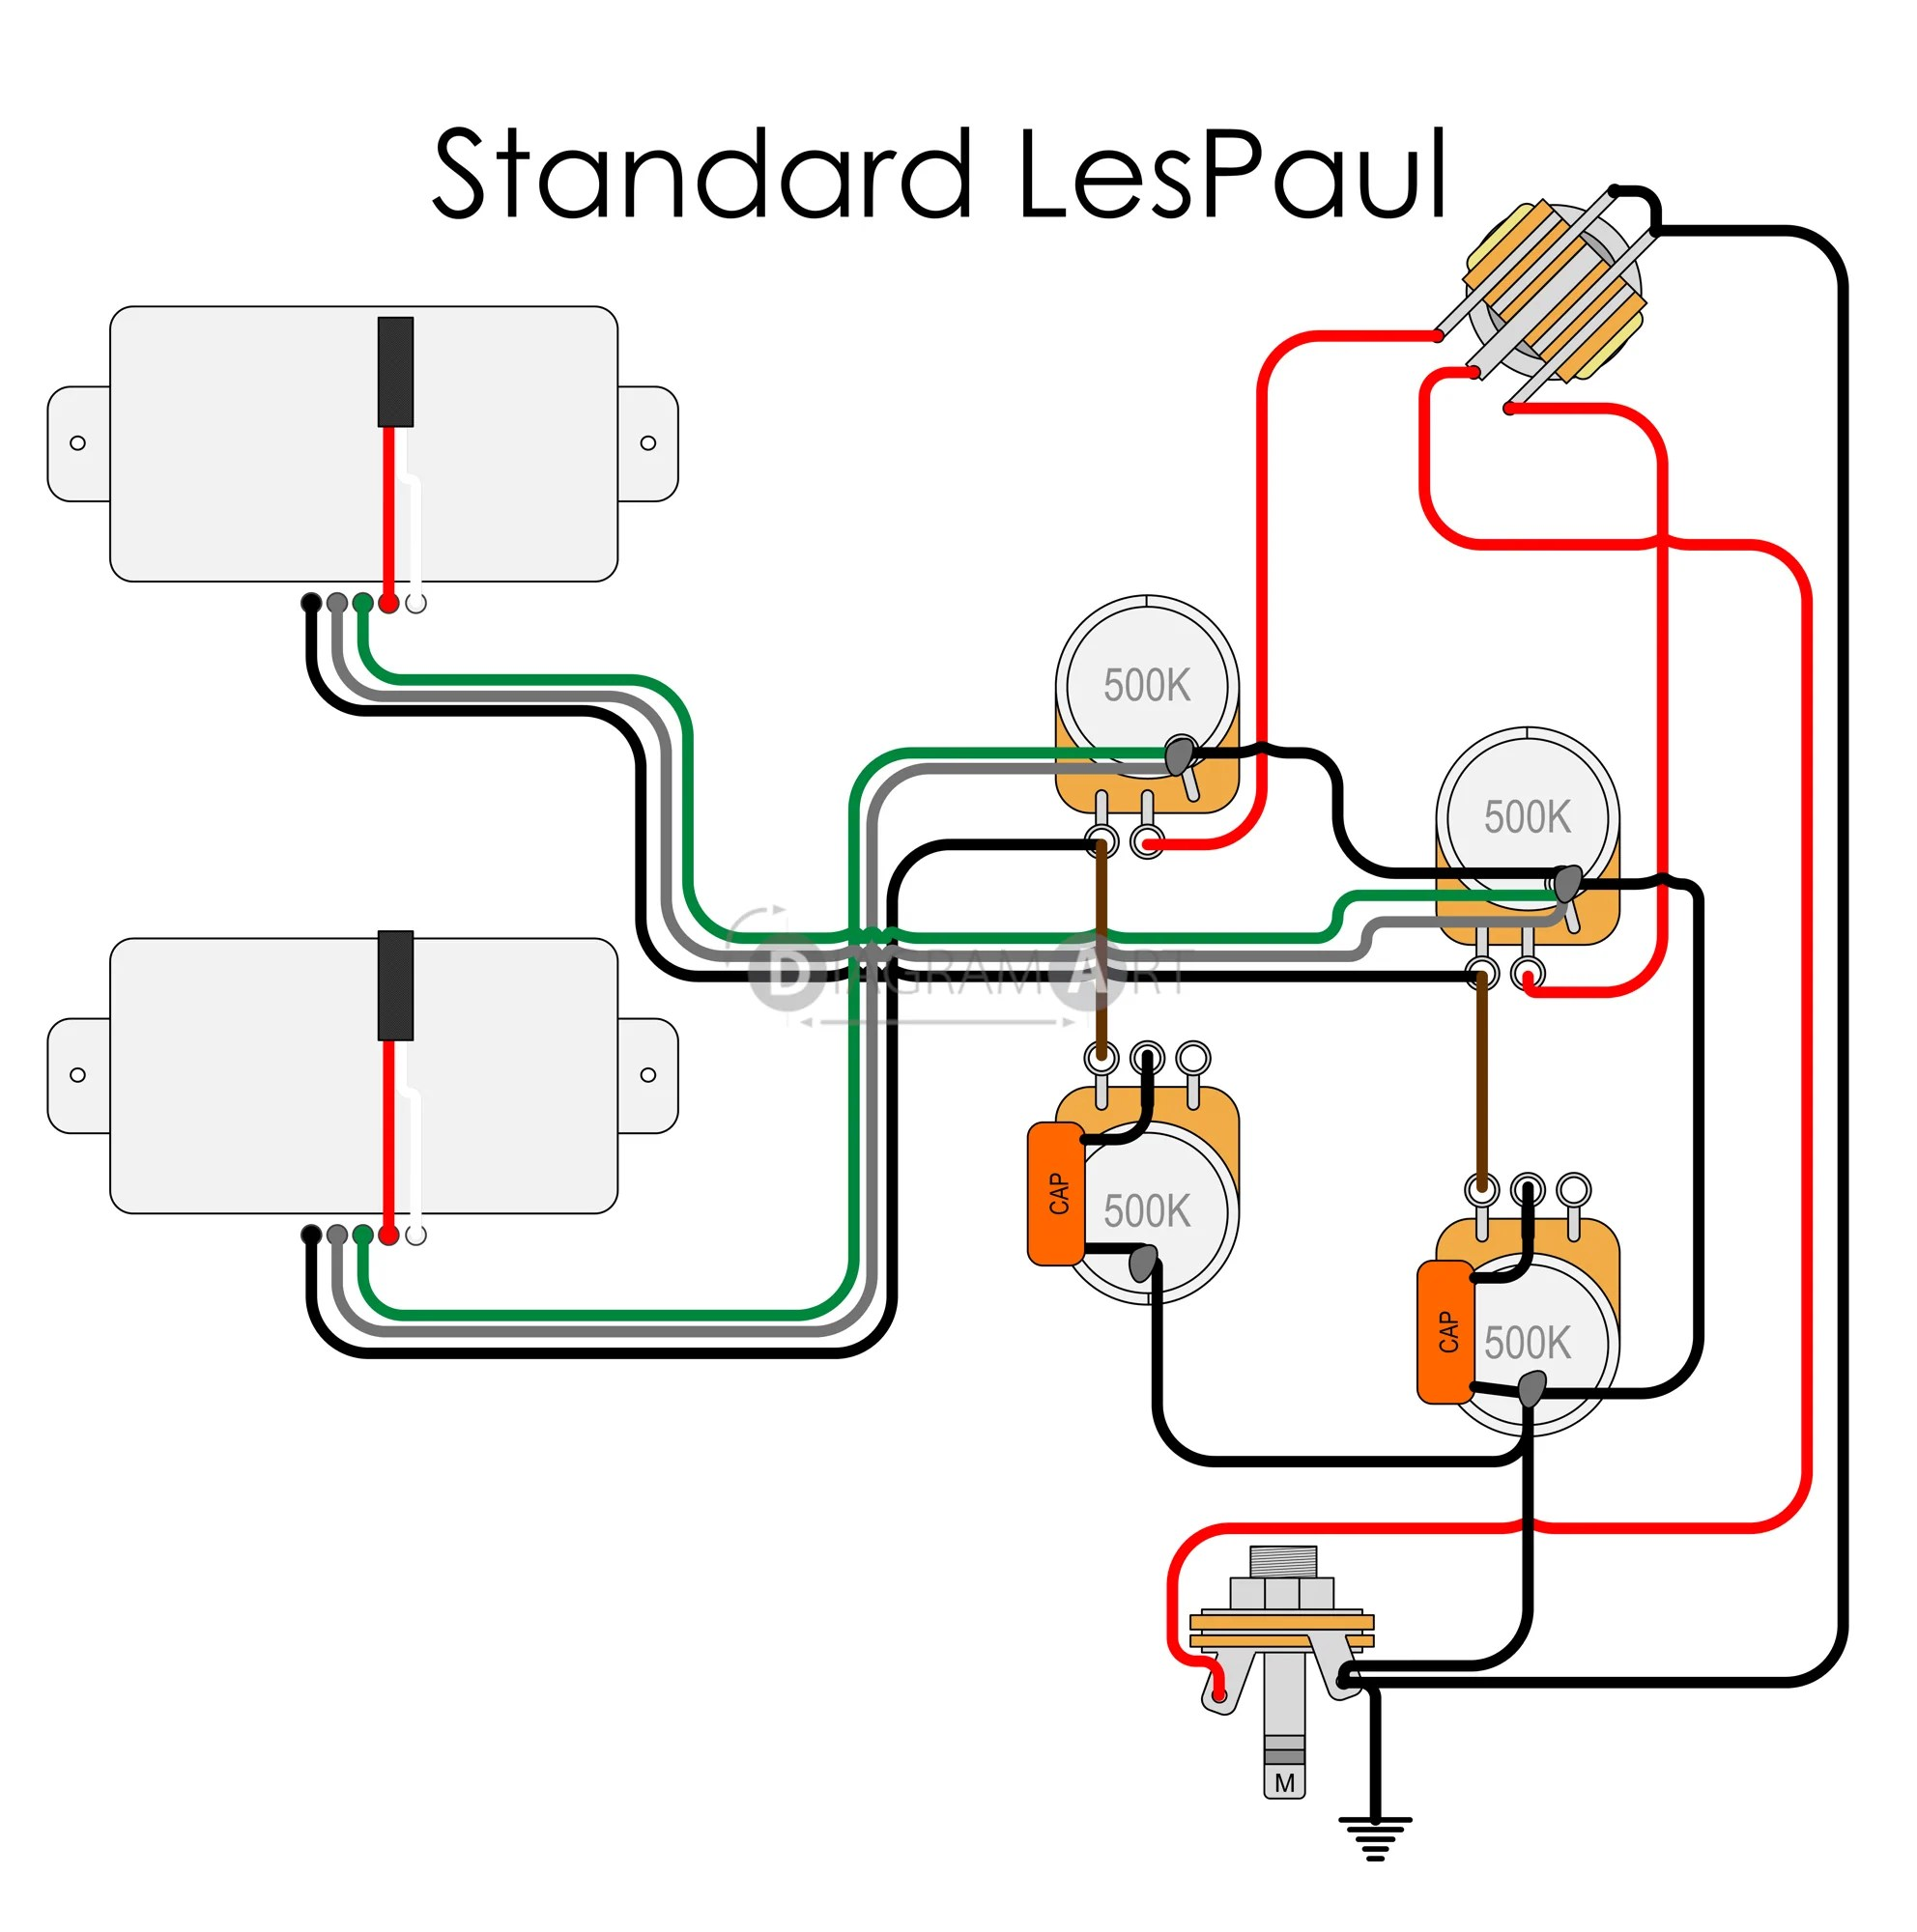 hight resolution of electric guitar wiring standard lespaul electric circuit diagramart vintage les paul wiring diagram electric